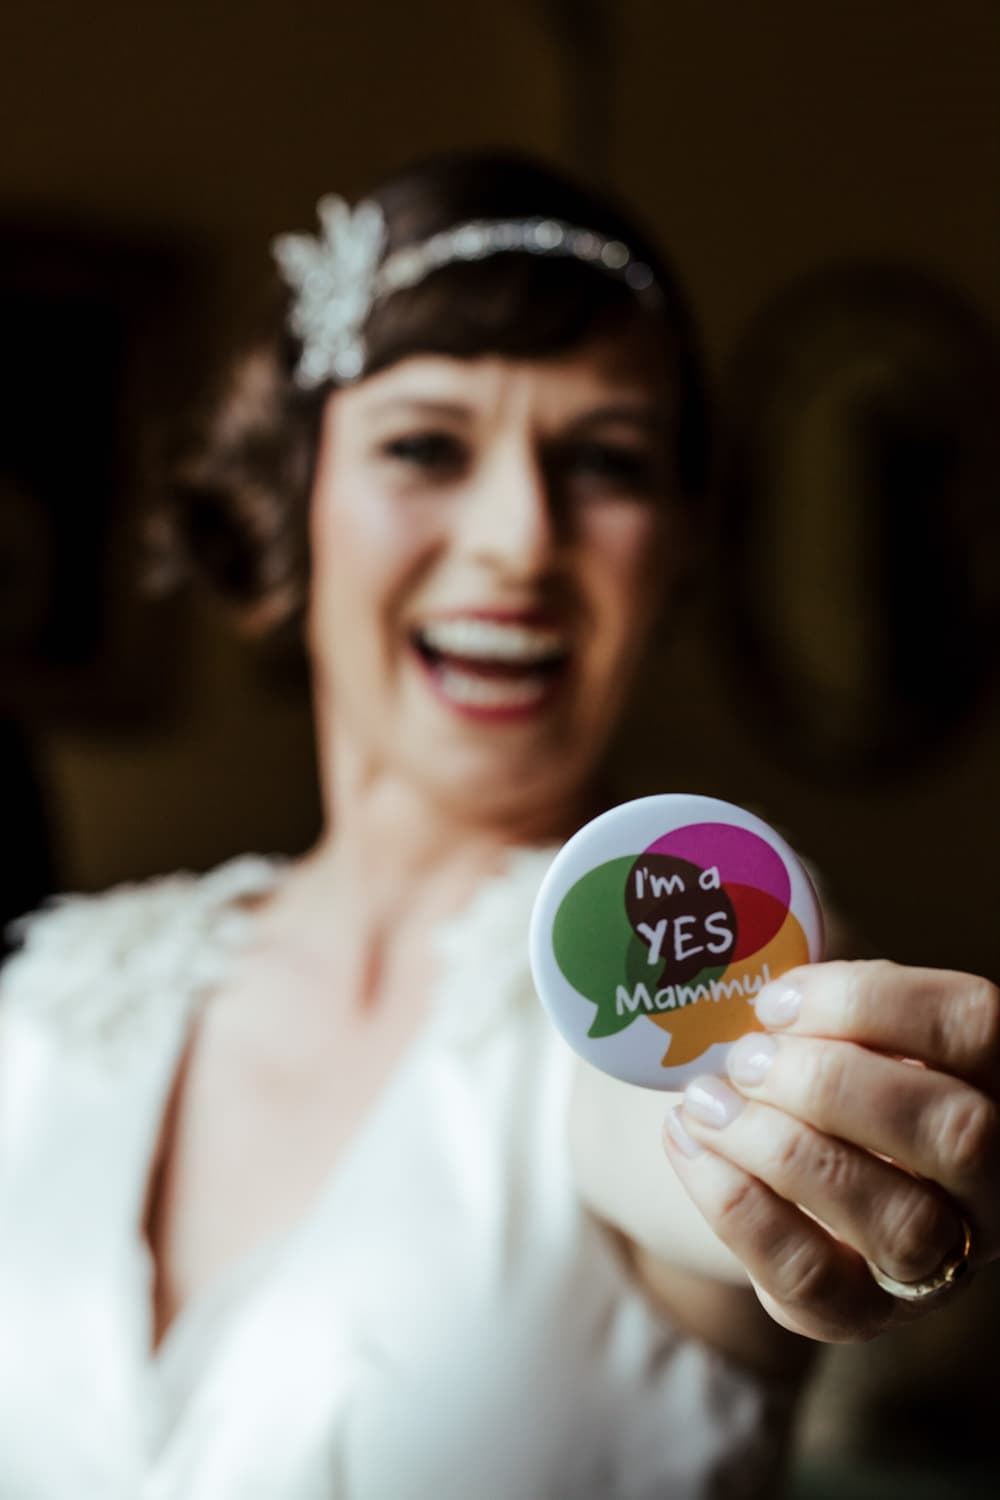 abortion referendum ireland bride with a yes pin